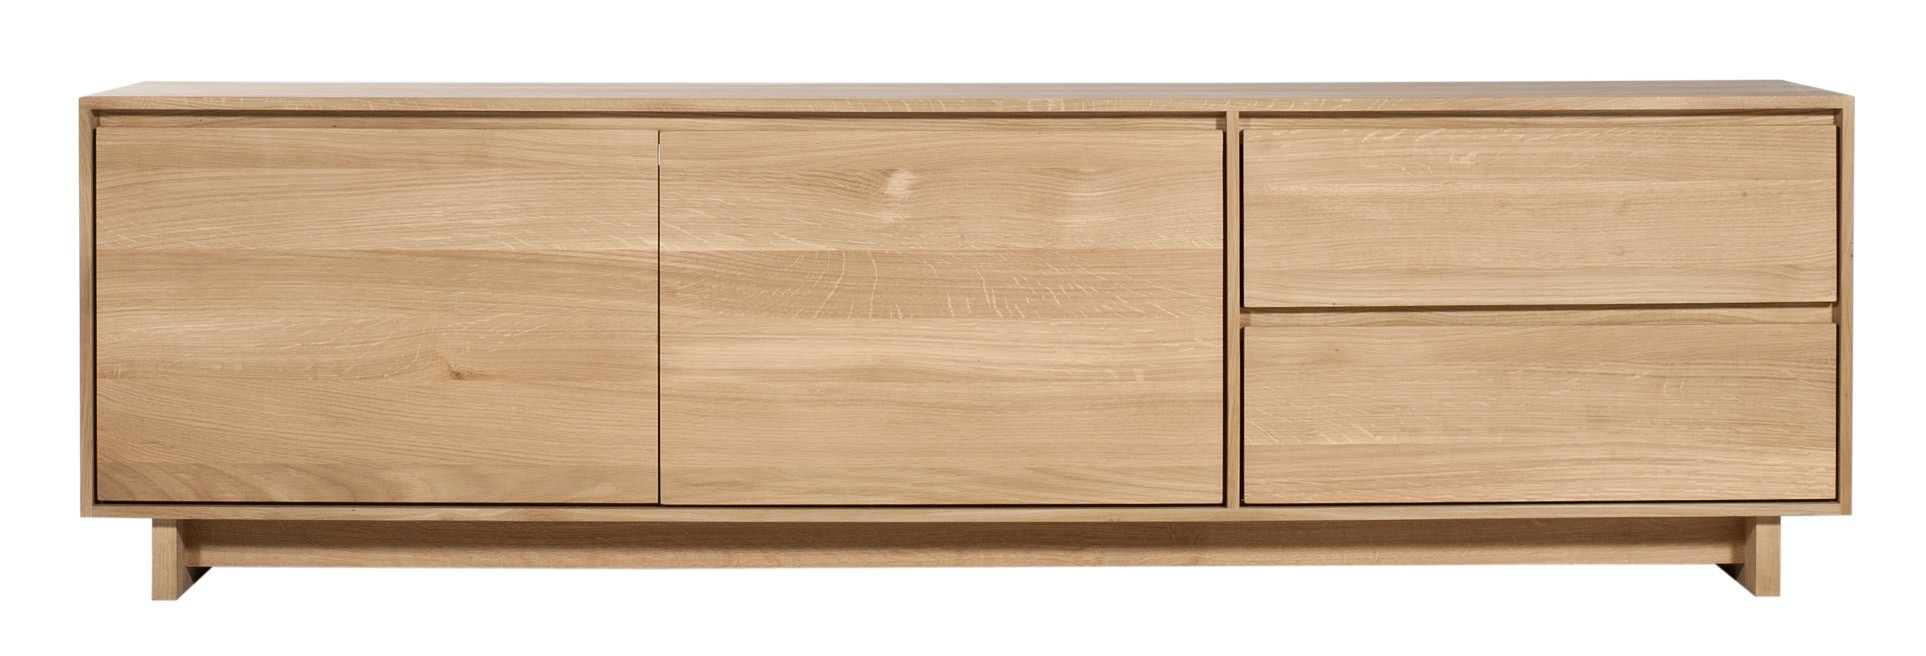 Meuble Tv Oak Wave D Ethnicraft 2 Porte 1 Porte Abattante 1  # Meuble Tv Informatique